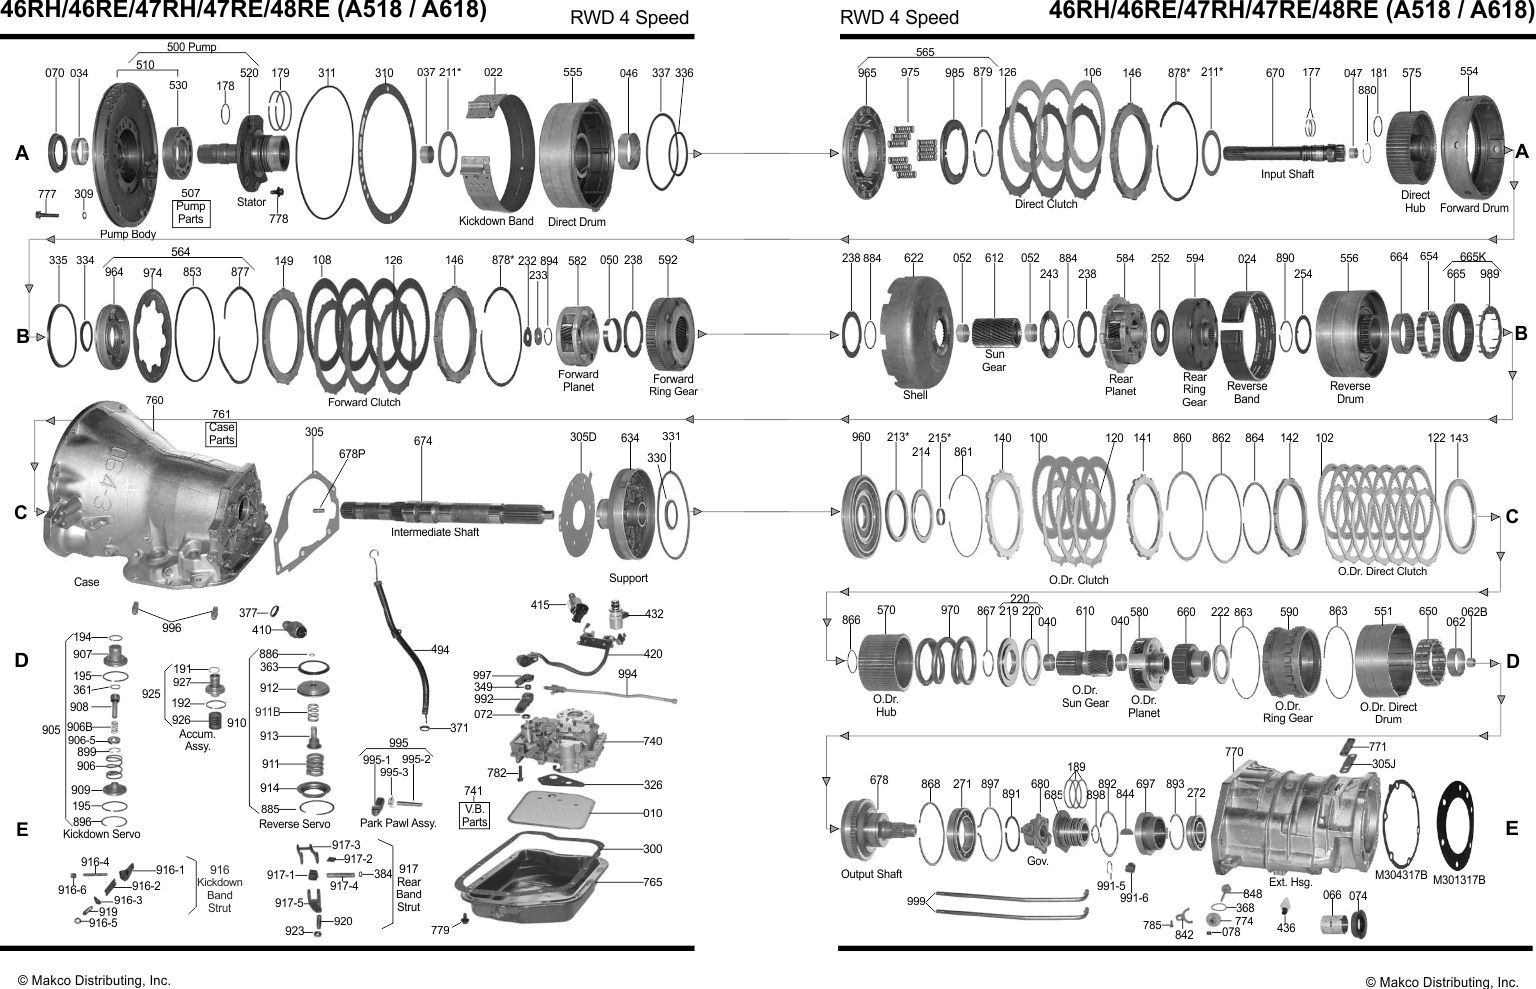 518 automatic overdrive diagram | a518 (46re), a618 (47re, 48re) transmission  parts chrysler rear wheel